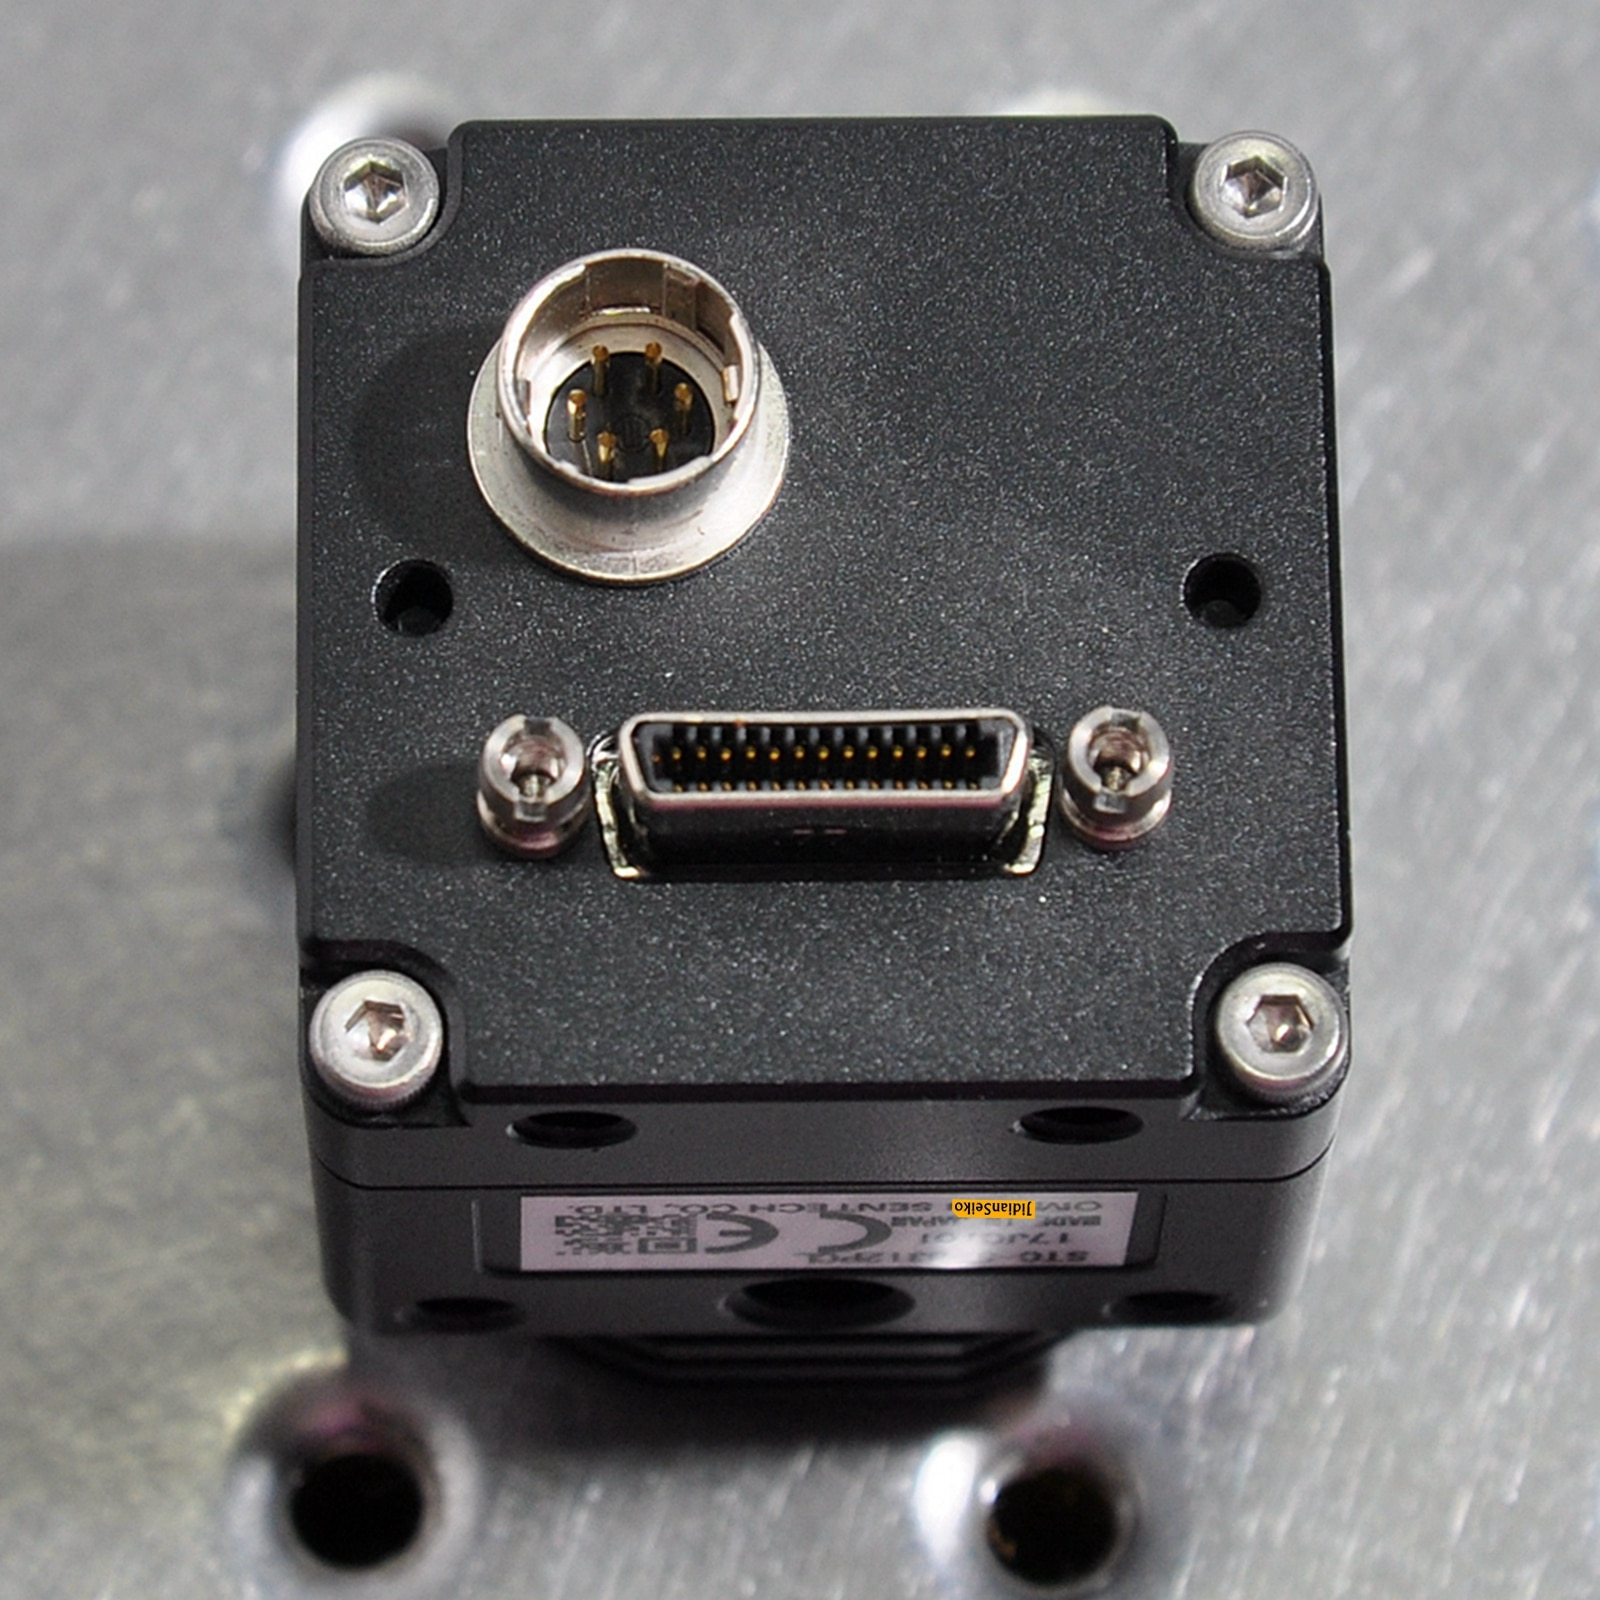 STC-SPB312PCL 3 million pixel industrial vision black and white CCD camera enlarge